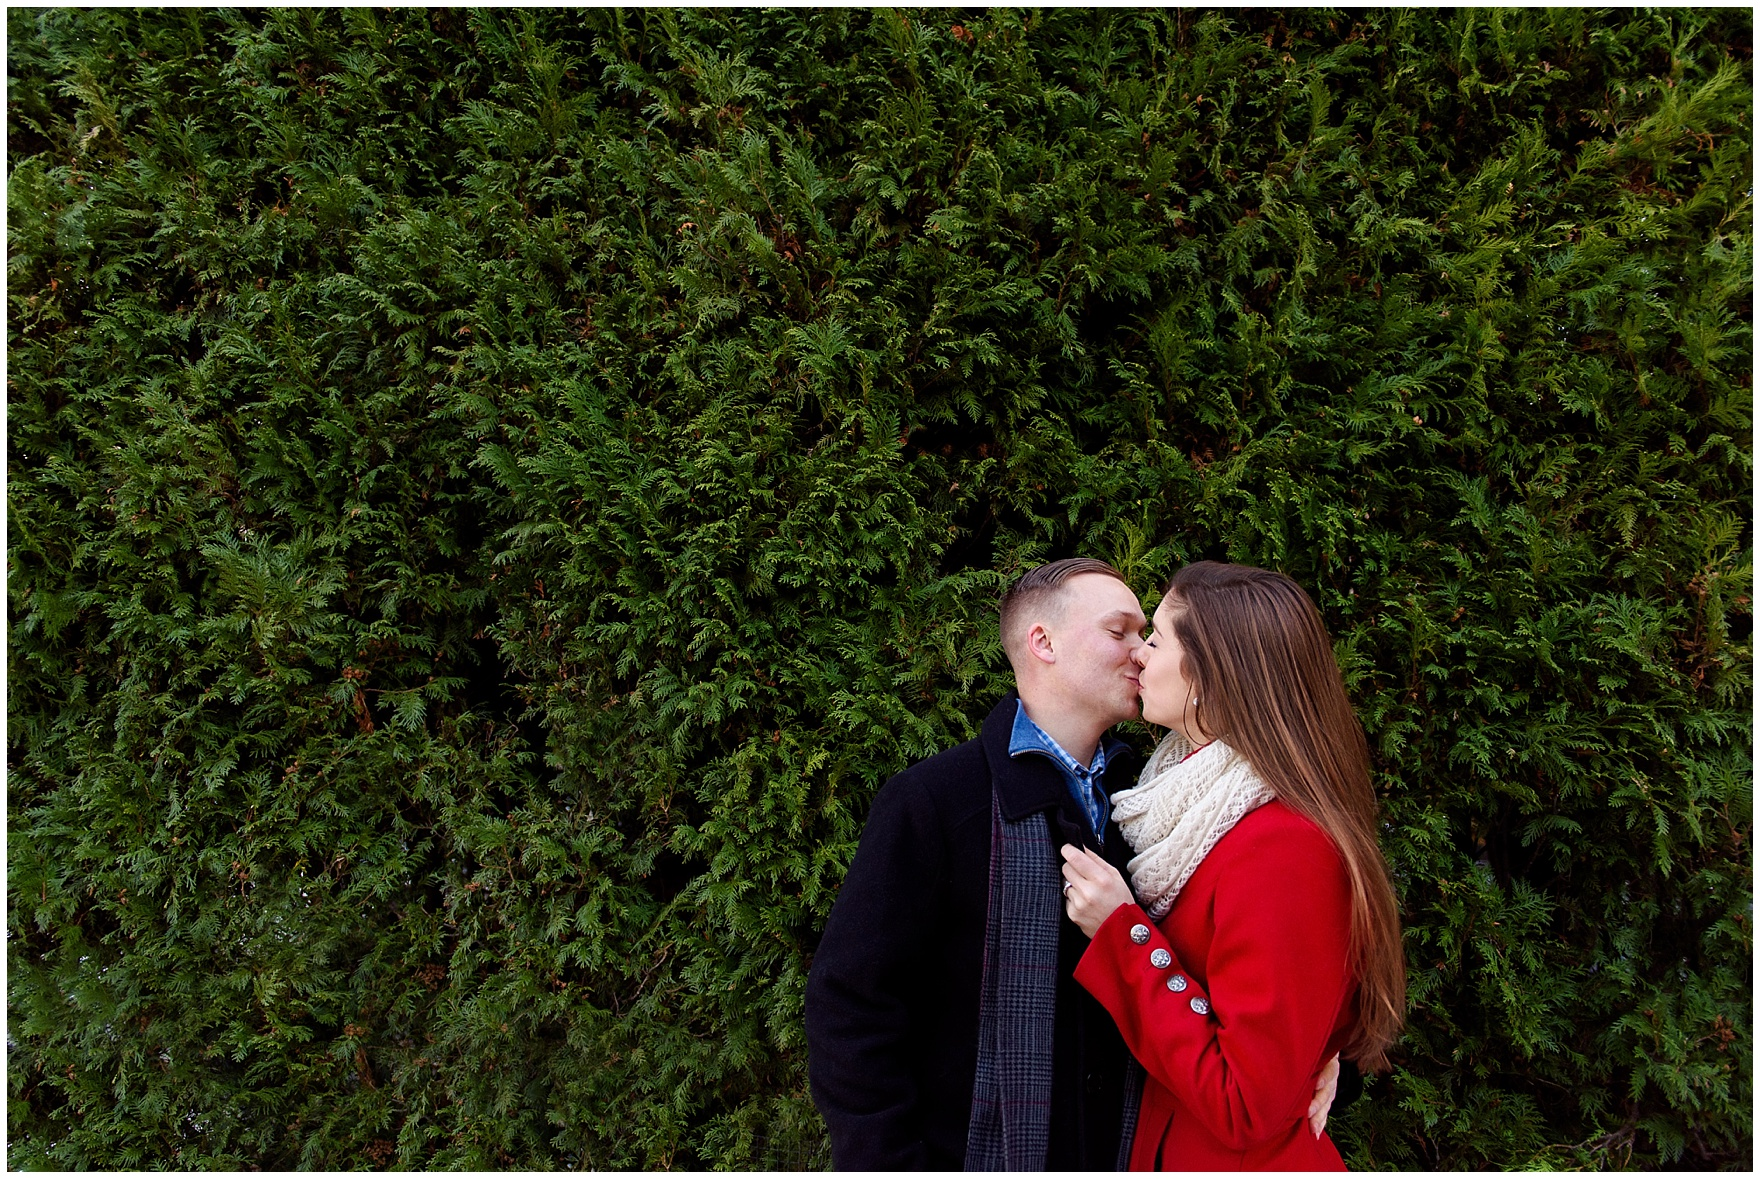 A couple embraces at Lurie Gardens during an Art Institute of Chicago engagement photography session.